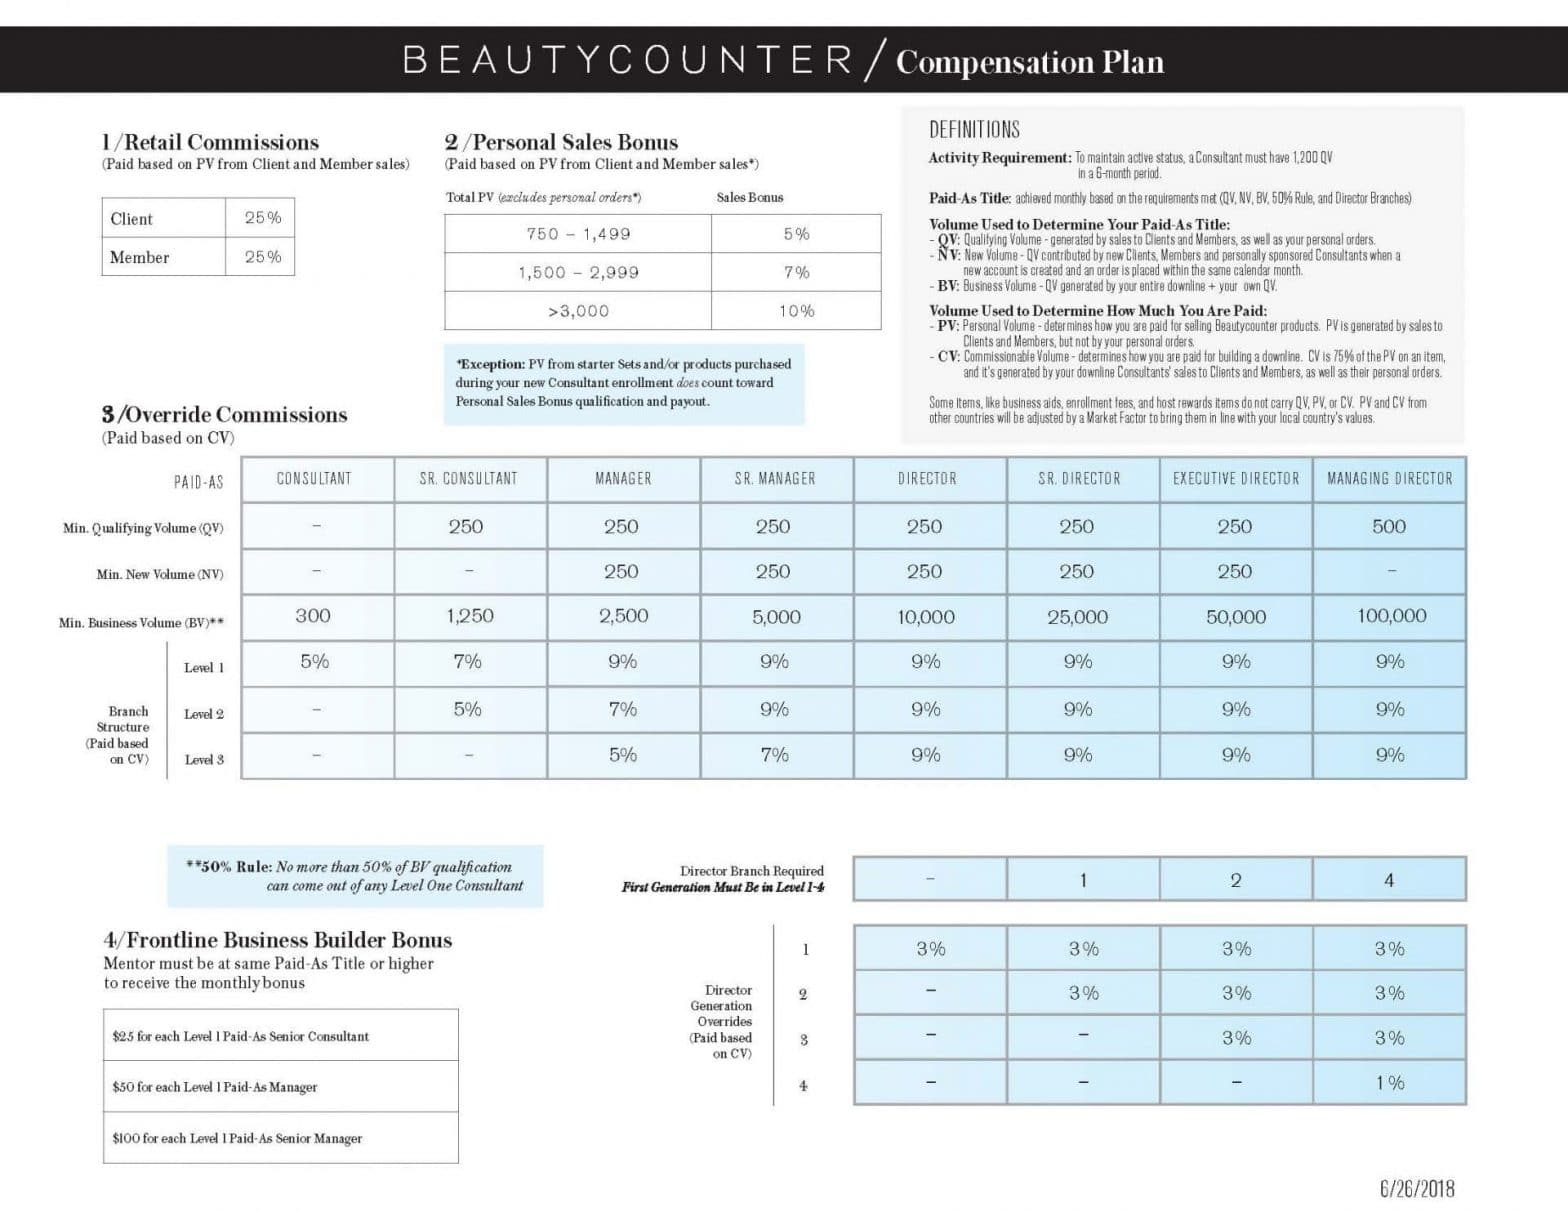 Beautycounter Compensation Plan